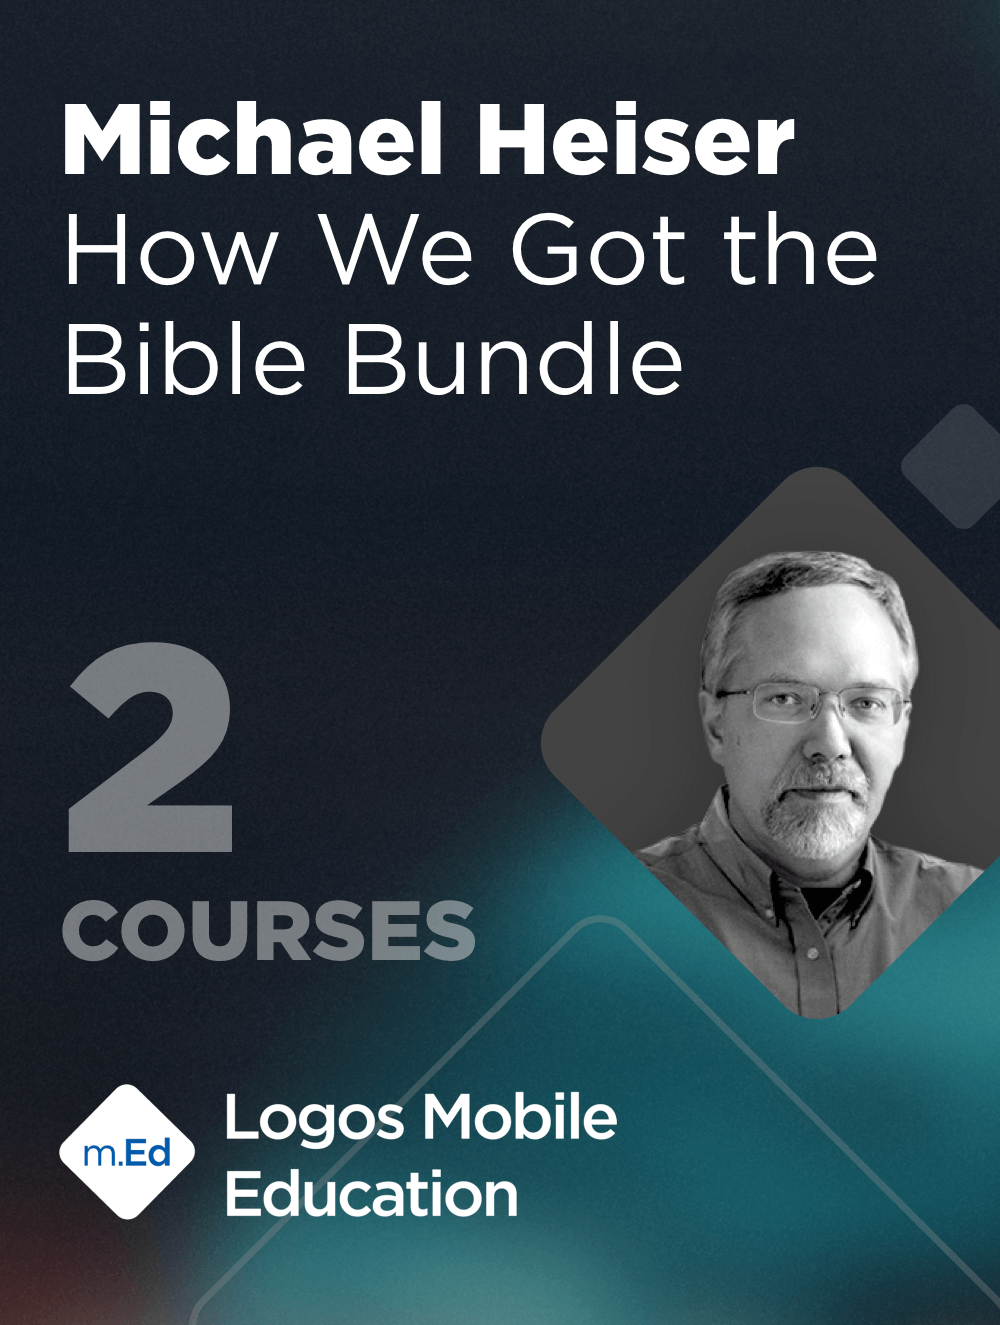 Mobile Ed: Michael Heiser How We Got the Bible Bundle (2 courses)